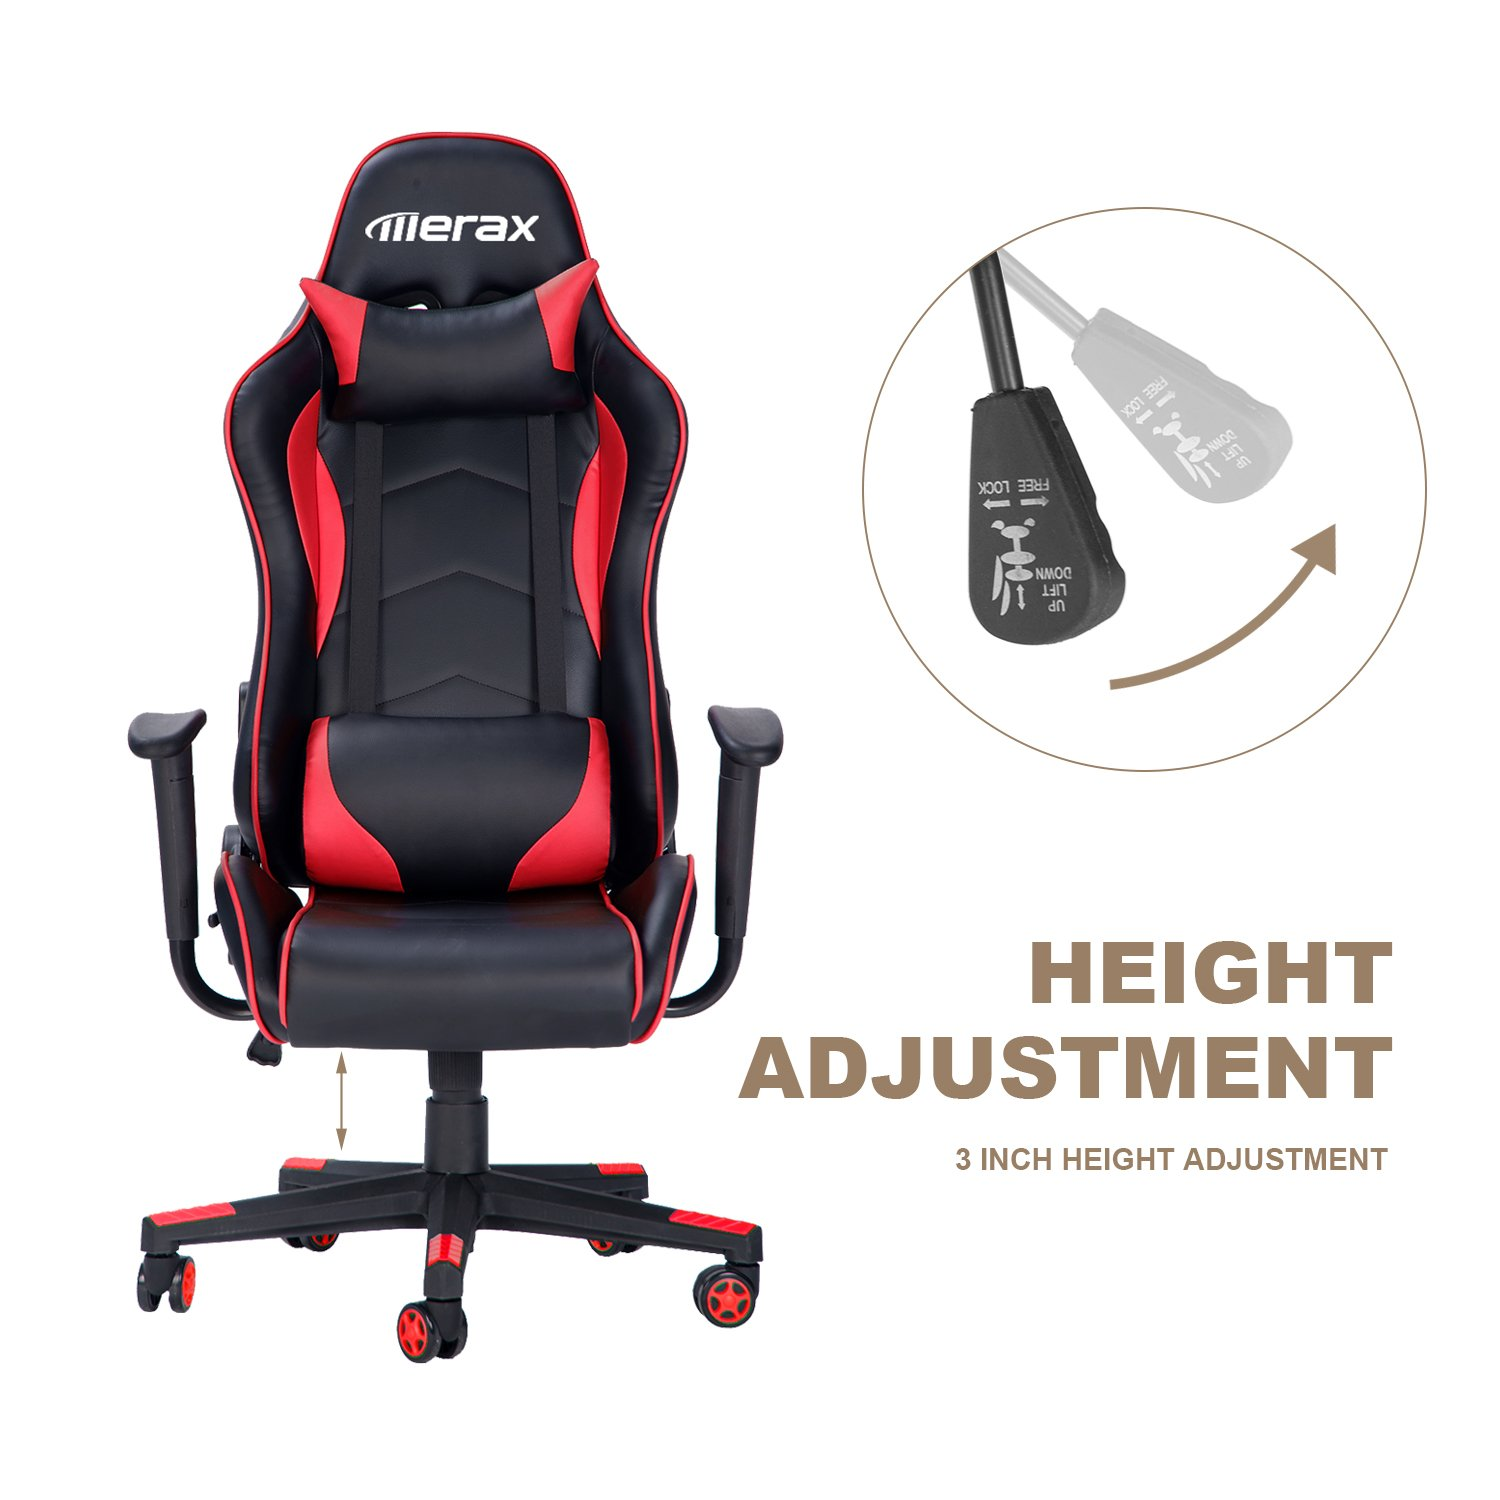 Amazon Merax Racing Style Gaming Chair Ergonomic Design High